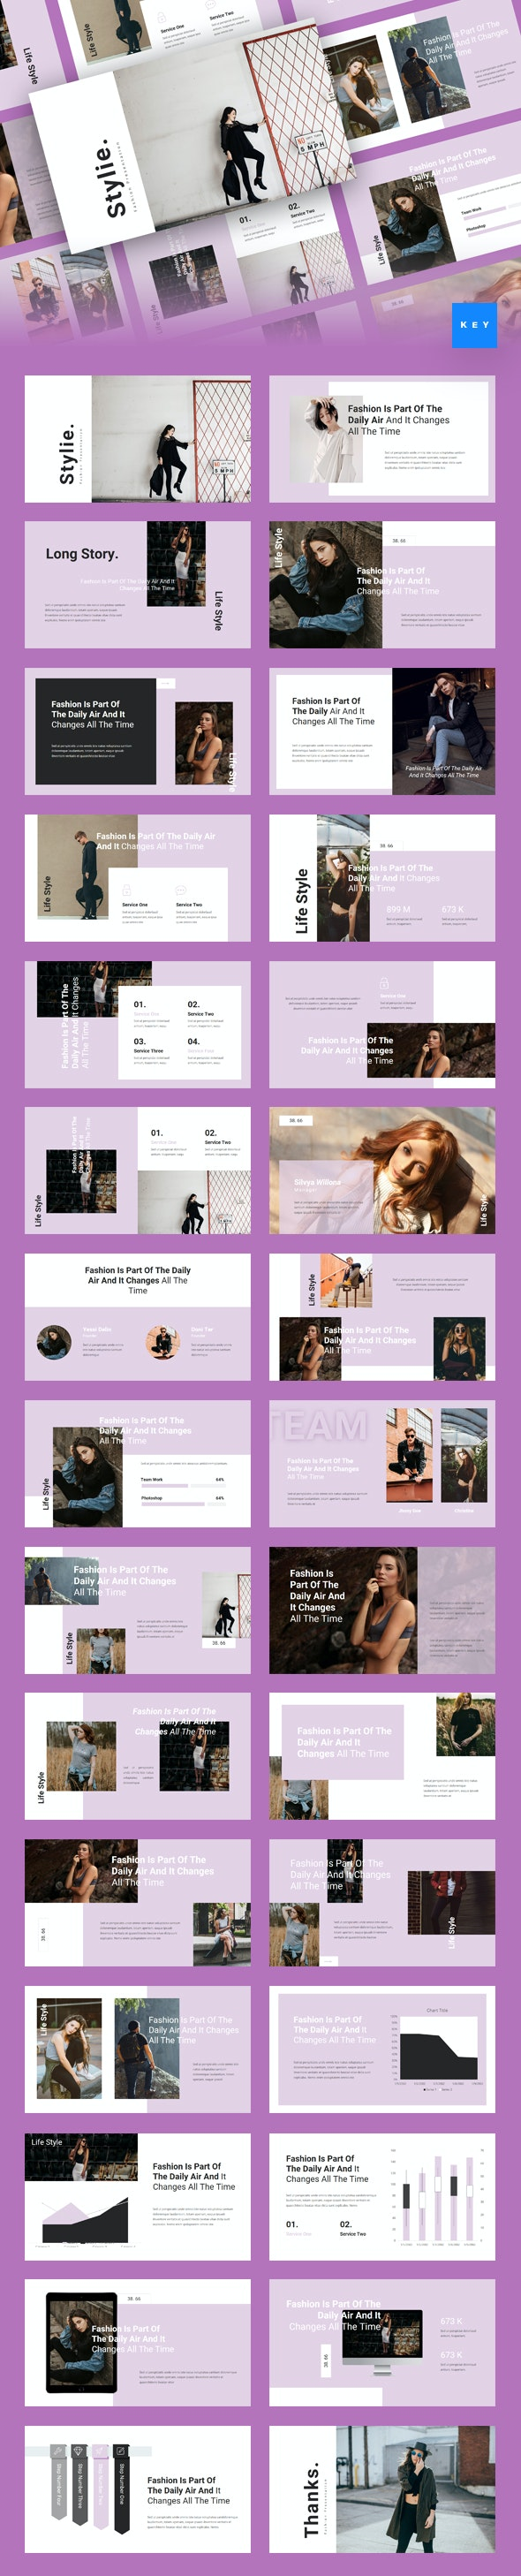 Stylie - Fashion Keynote Template - Creative Keynote Templates